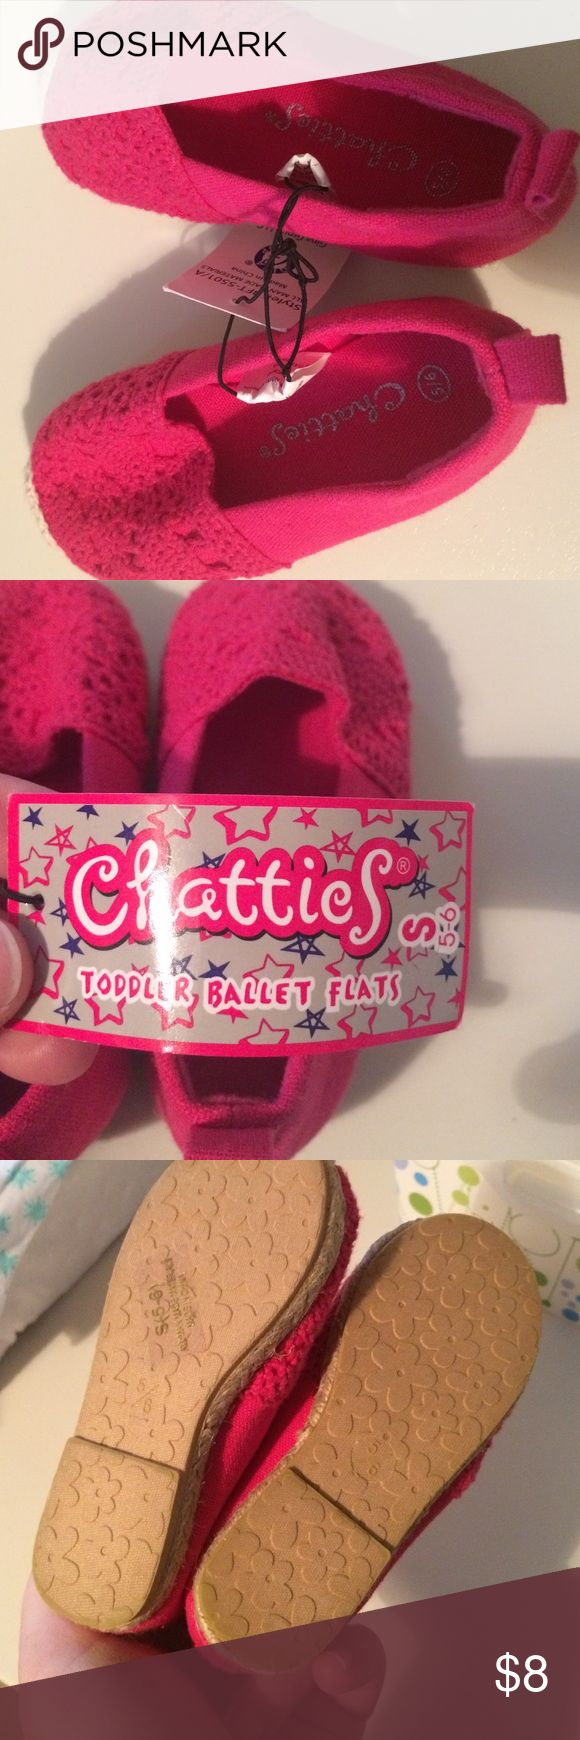 Toddler Ballet Flats Hot pink, espadrille style ballet flats for toddler. New with tags. Chatties  brand; size 5/6. Shoes